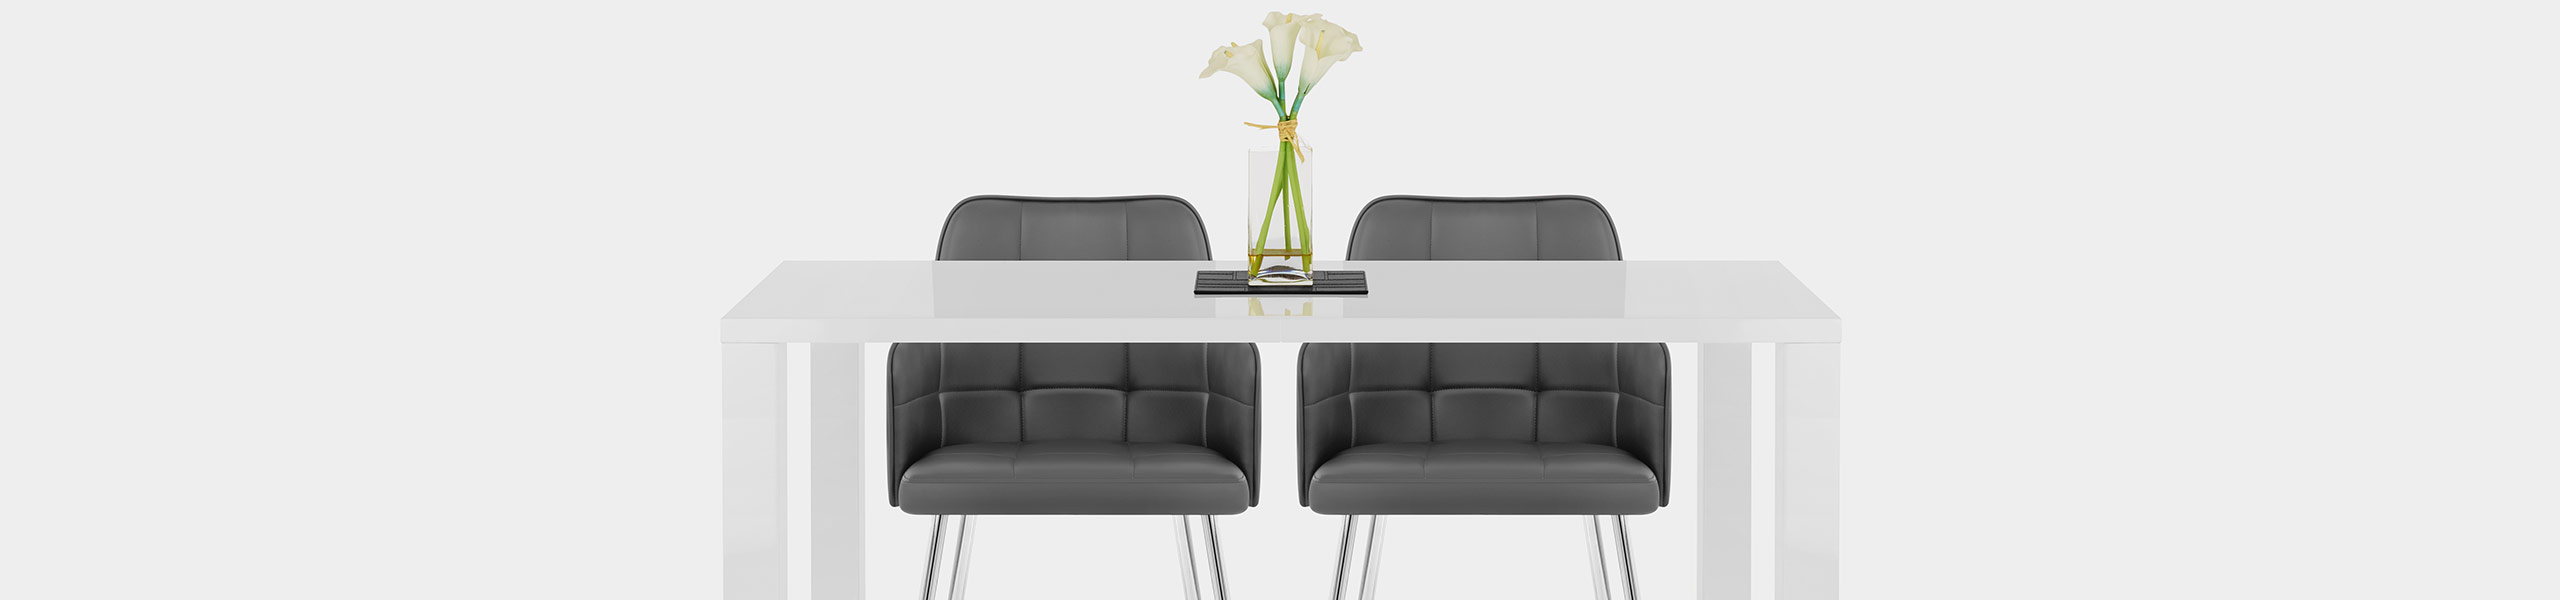 Dawn Dining Chair Grey Video Banner